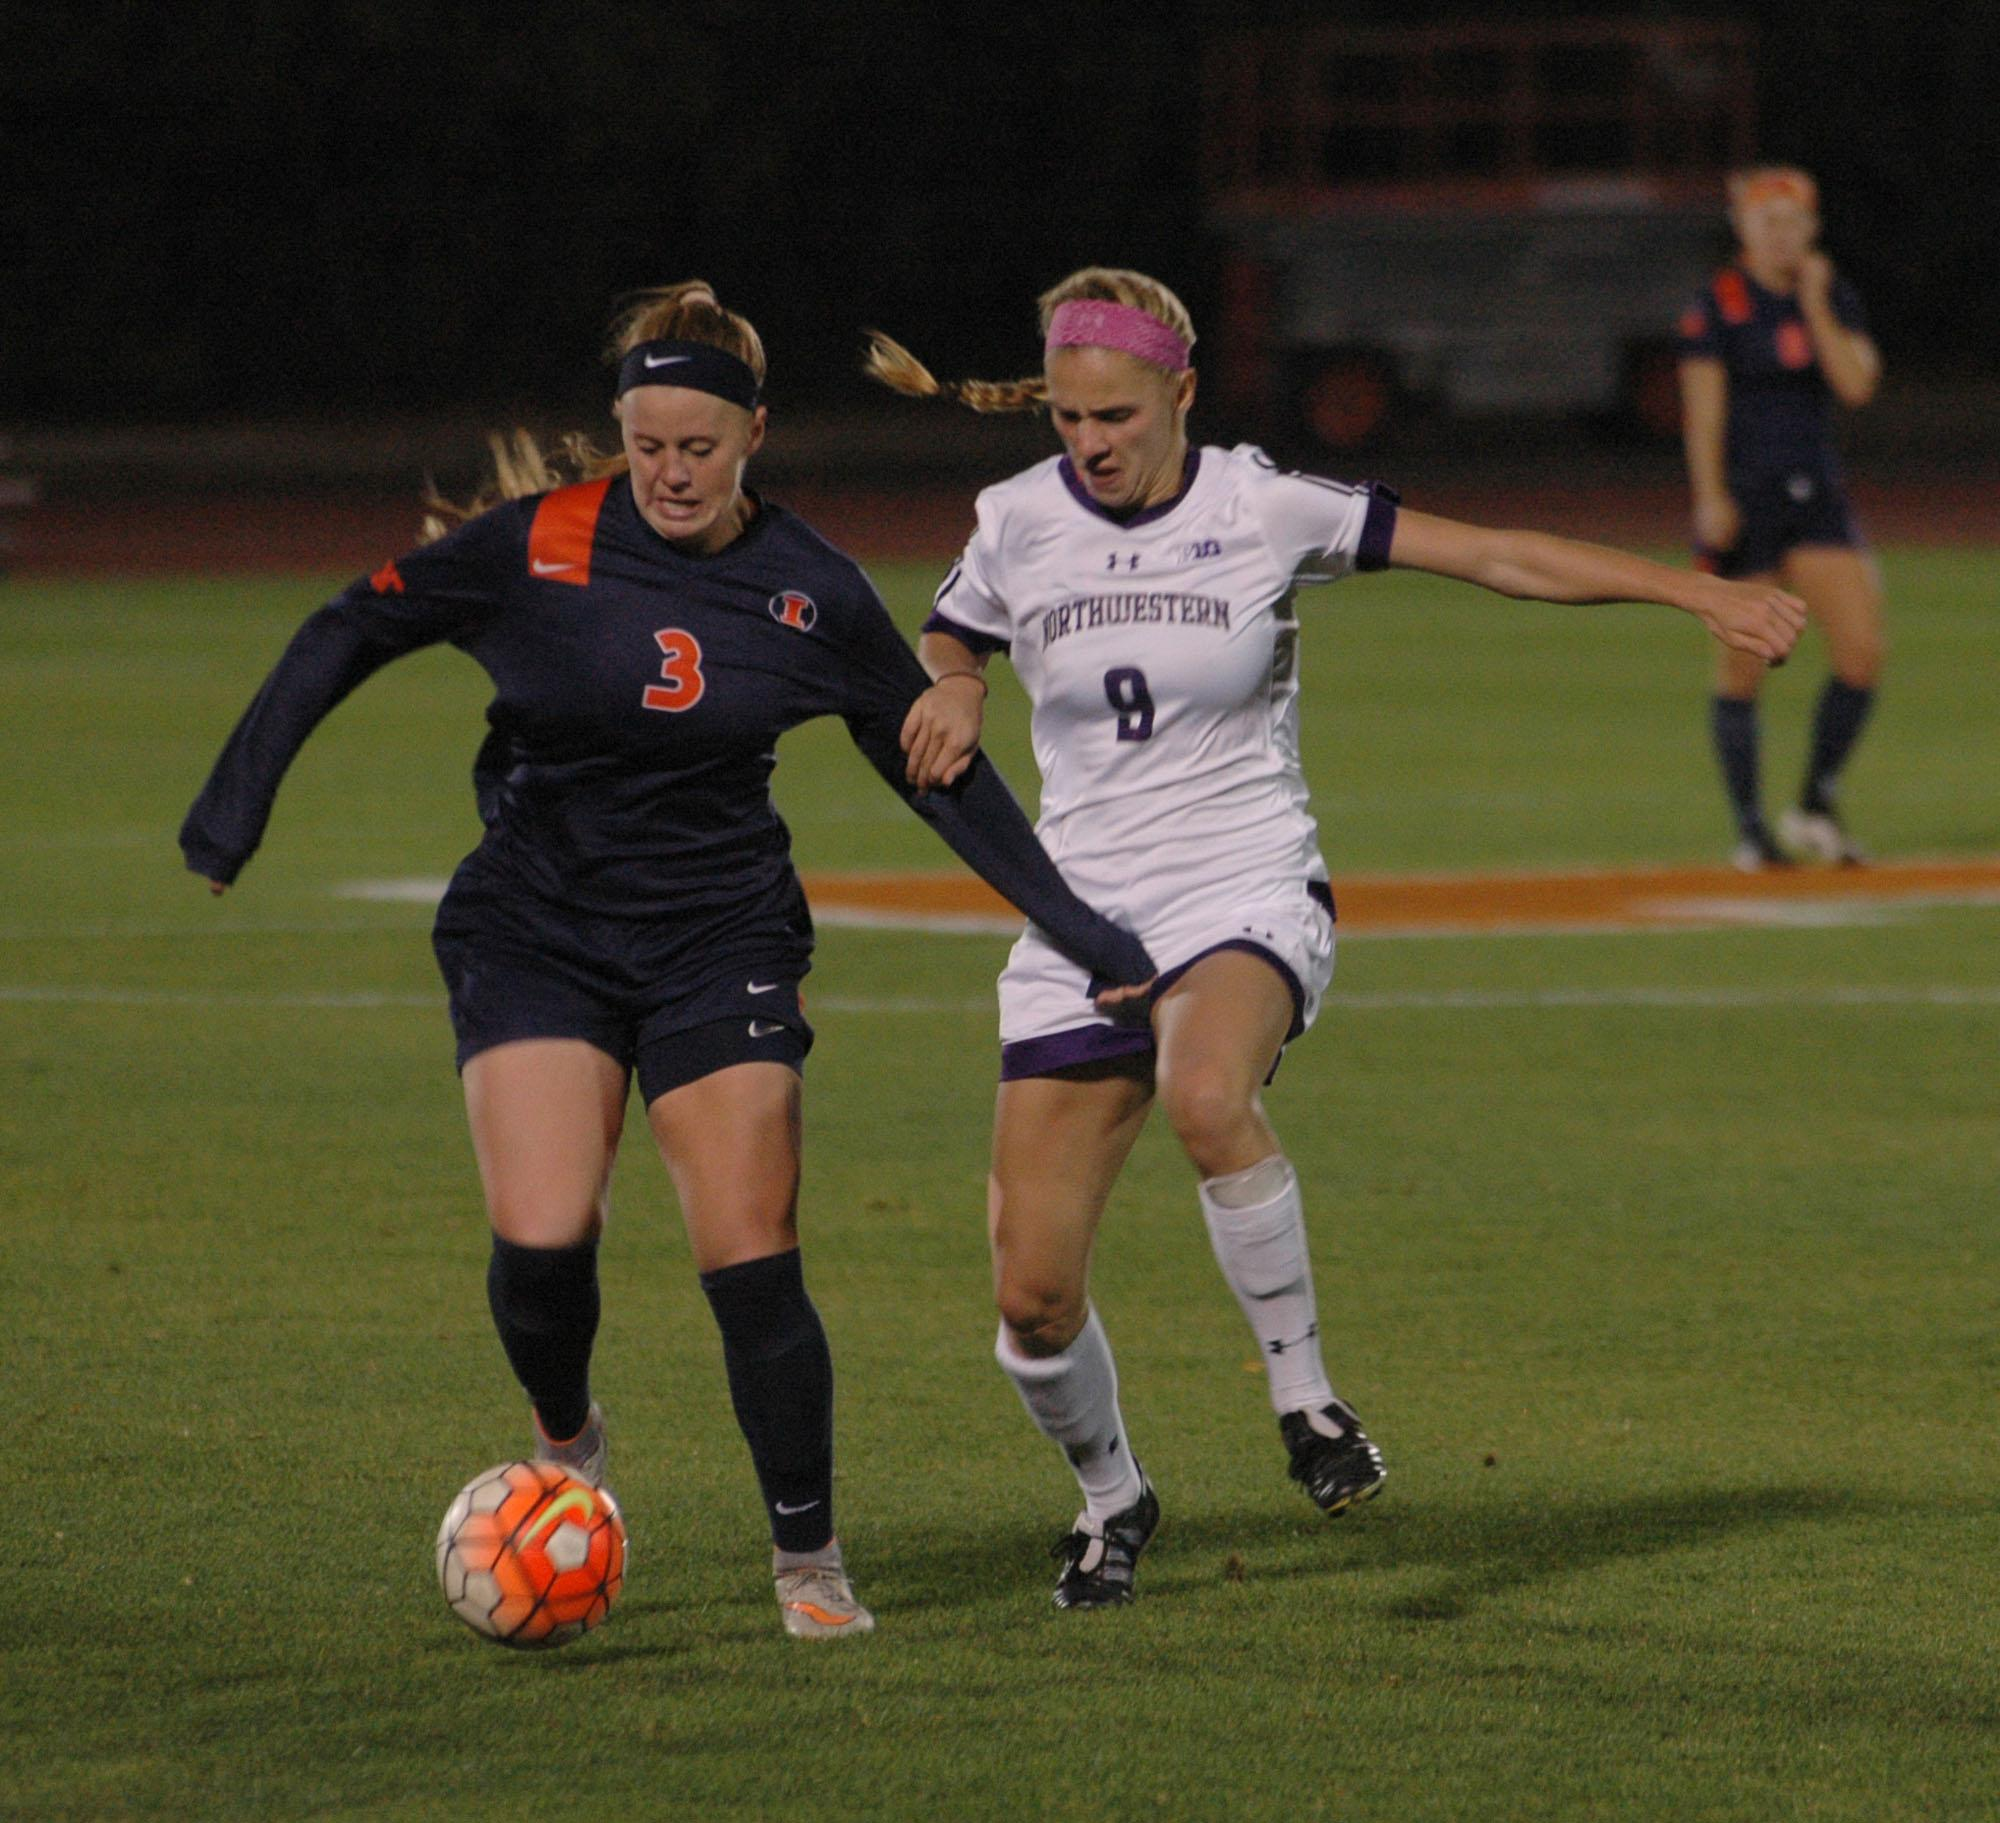 Jannelle Flaws keeping the ball away from Northwestern during the Illinois vs Northwestern game at The Illinois Soccer and Track Stadium on October 24, 2015.